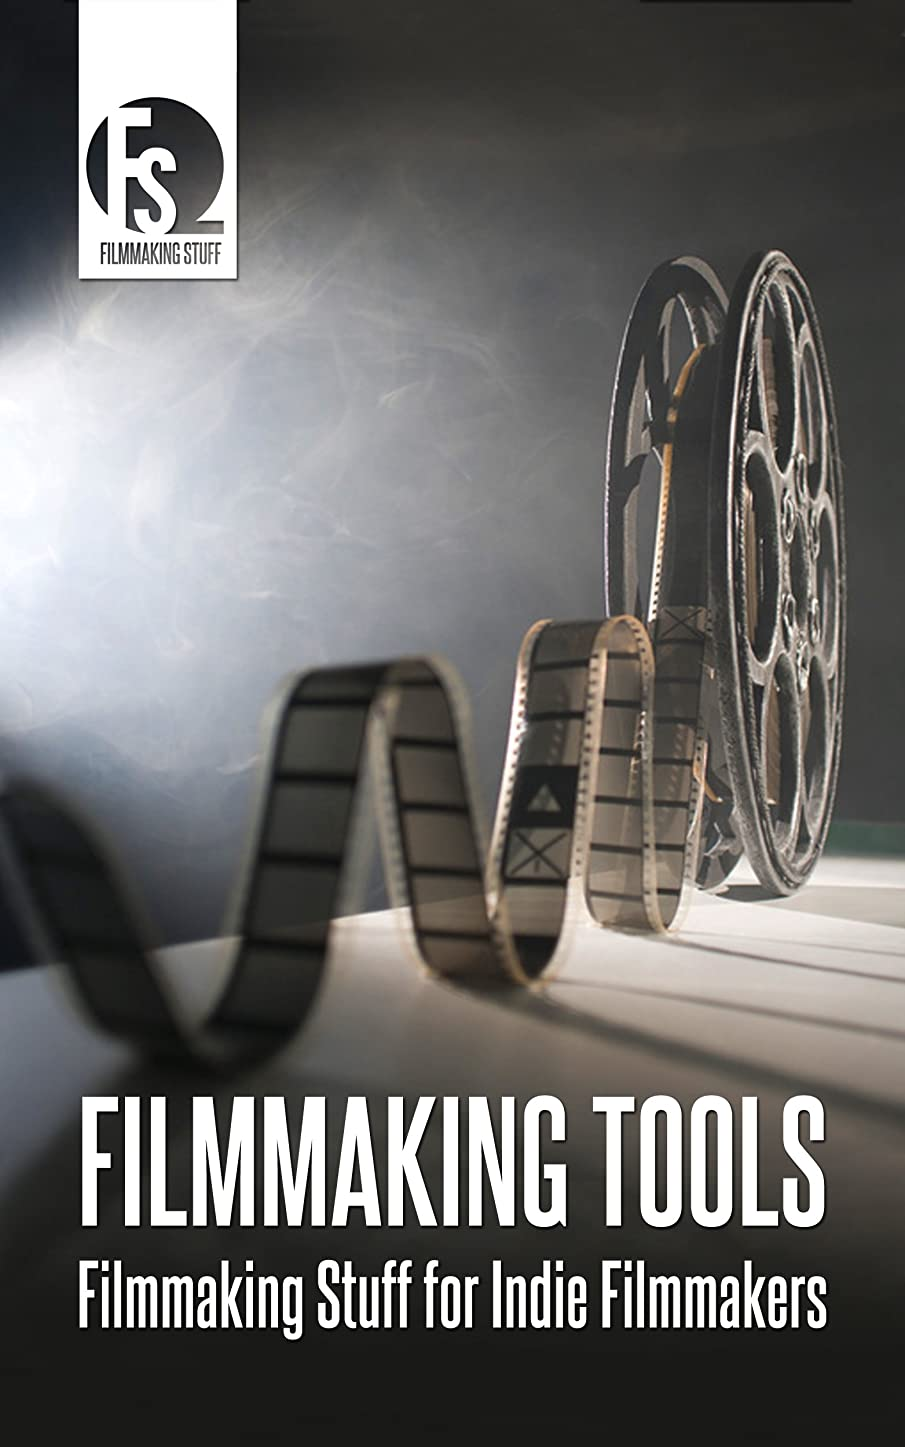 協定洪水害虫Filmmaking Tools (English Edition)